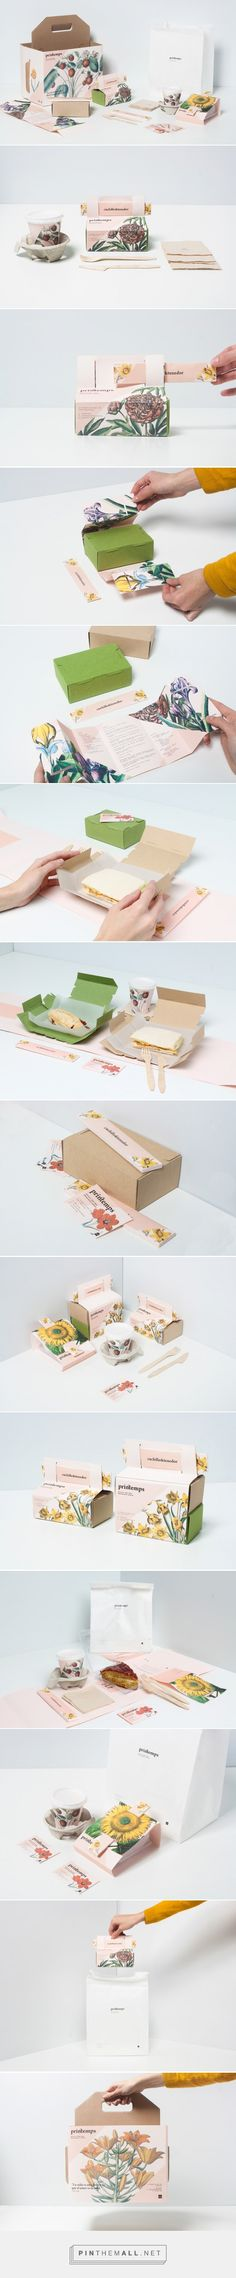 Printemps #TakeAway #packaging #student #concept designed by Nat Tattaglia, Eli García & Olaya Pintado - http://www.packagingoftheworld.com/2015/06/printemps-take-away-student-project.html